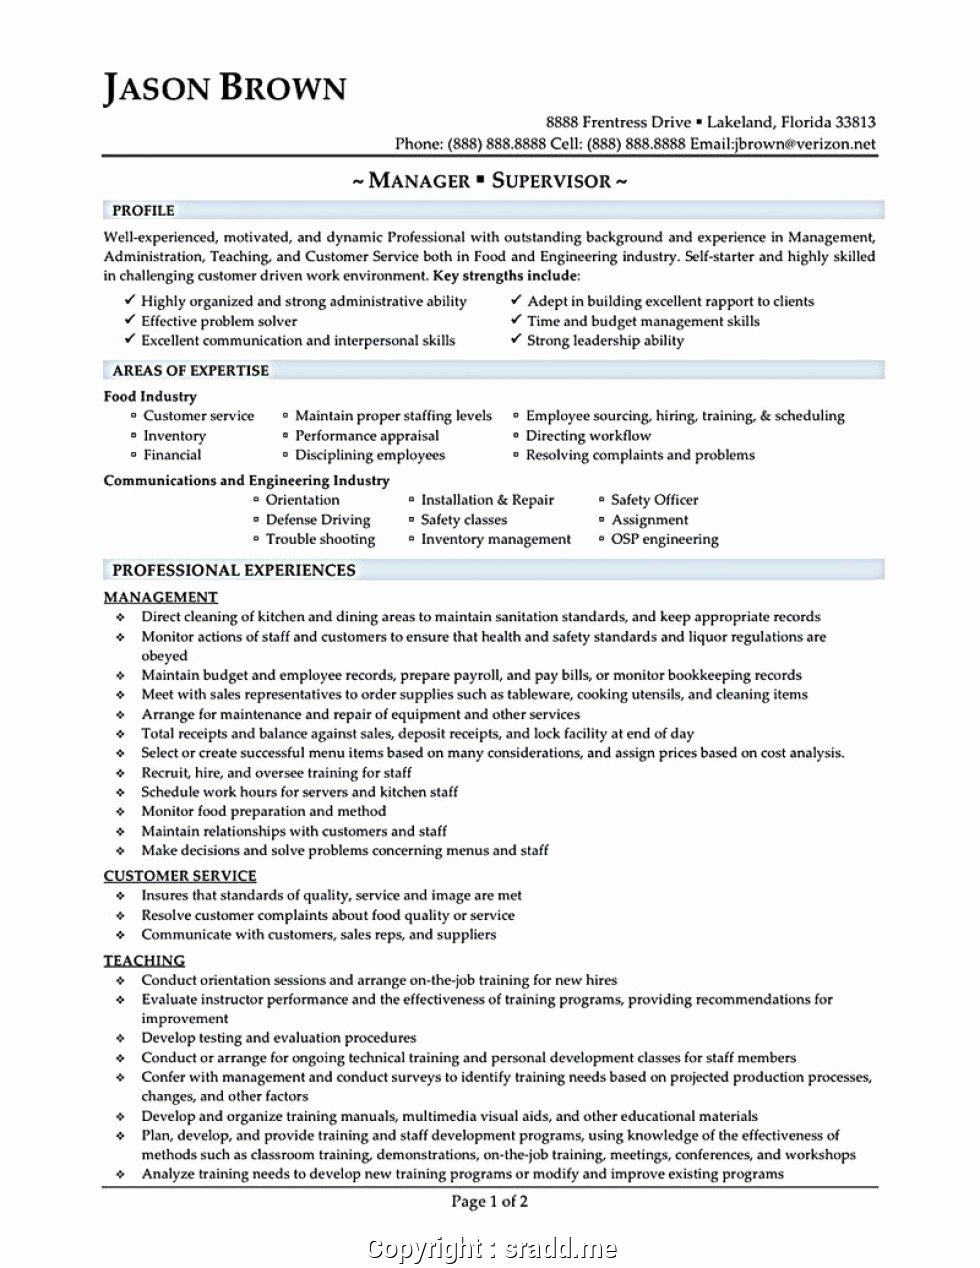 Professional Fast Food Restaurant Manager Resume